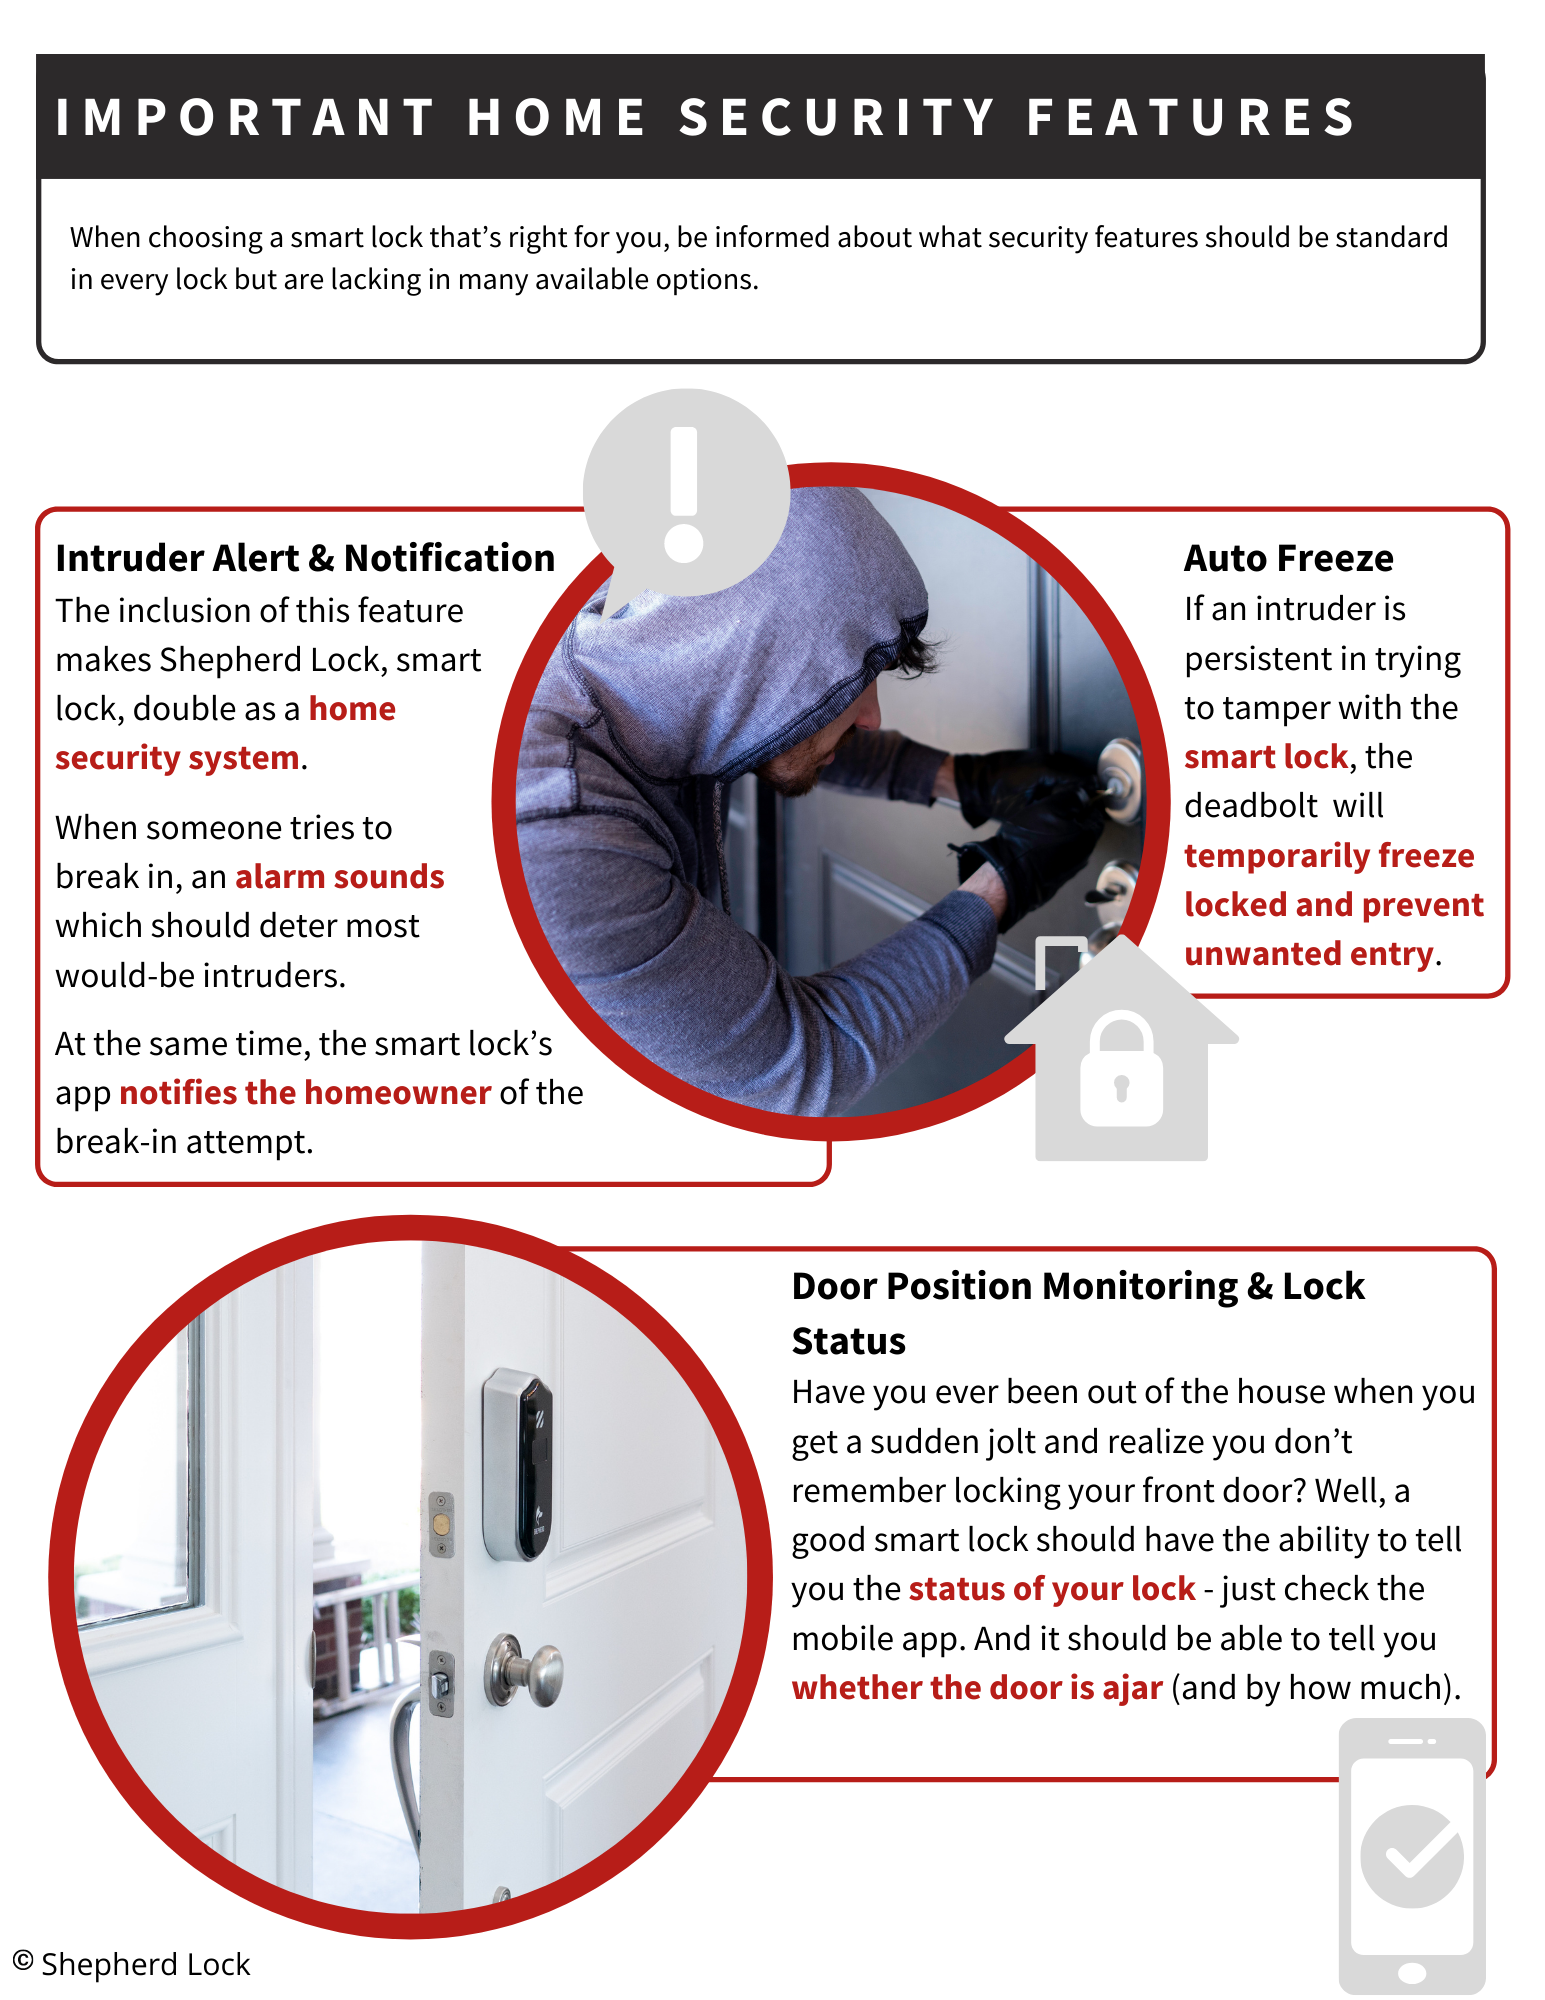 Important Home Security Features. When choosing a smart lock that's right for you, be informed about what security features should be standard in every lock but are lacking in many available options. Intruder Alert & Notification - he inclusion of this feature makes Shepherd Lock, smart lock, double as a home security system. When someone tries to  break in, an alarm sounds which should deter most would-be intruders.  At the same time, the smart lock's app notifies the homeowner of the break-in attempt. Auto Freeze. f an intruder is persistent in trying to tamper with the smart lock, the deadbolt will temporarily freeze locked and prevent unwanted entry. Door Position Monitoring & Lock Status - Have you ever been out of the house when you get a sudden jolt and realize you don't remember locking your front door? Well, a good smart lock should have the ability to tell you the status of your lock - just check the mobile app. And it should be able to tell you whether the door is ajar (and by how much).